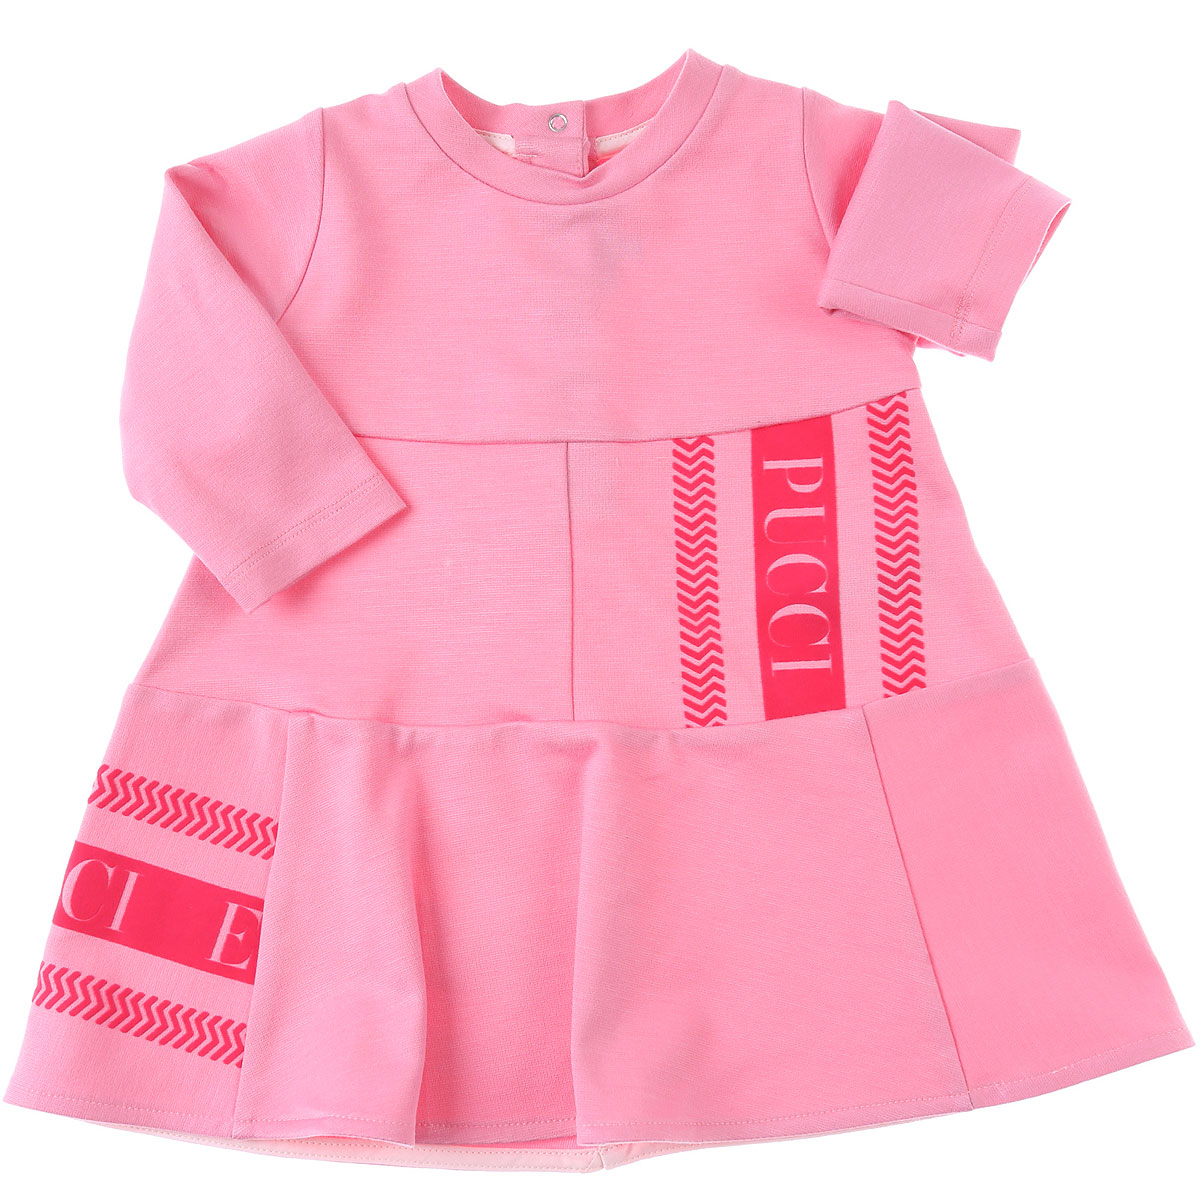 Emilio Pucci Baby Dress for Girls On Sale, Pink, Viscose, 2019, 12M 18M 2Y 6M